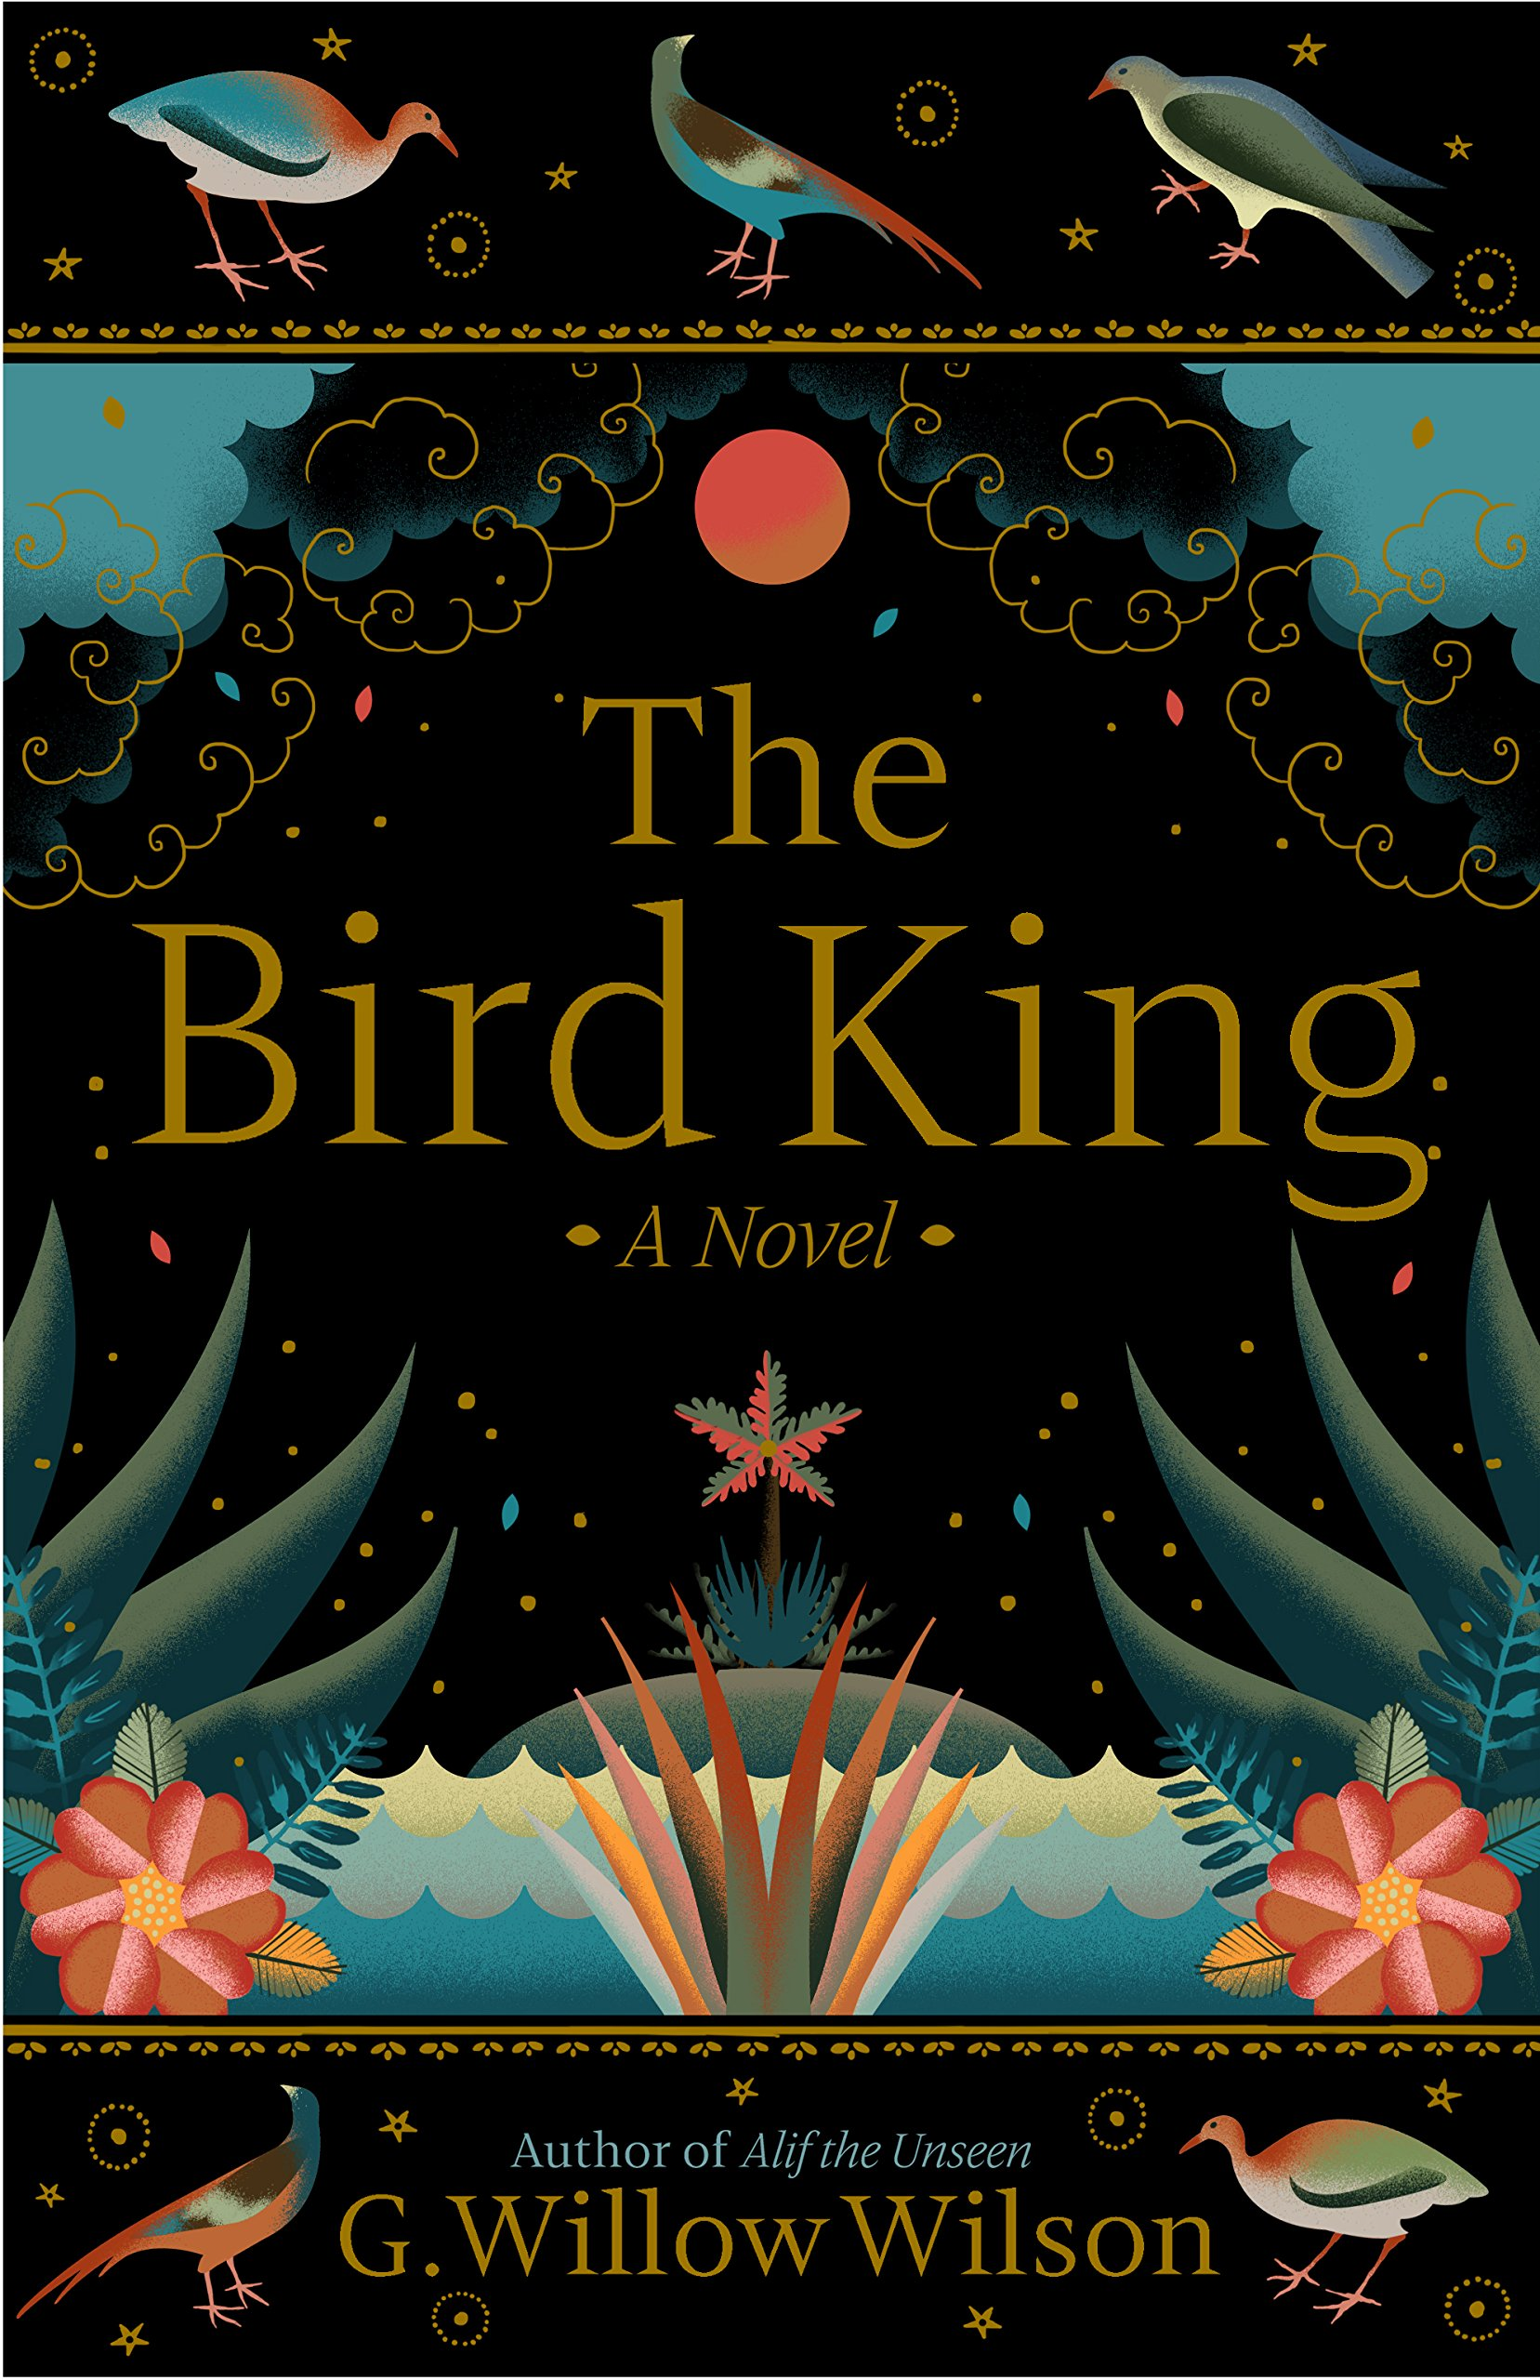 Image result for bird king g willow wilson